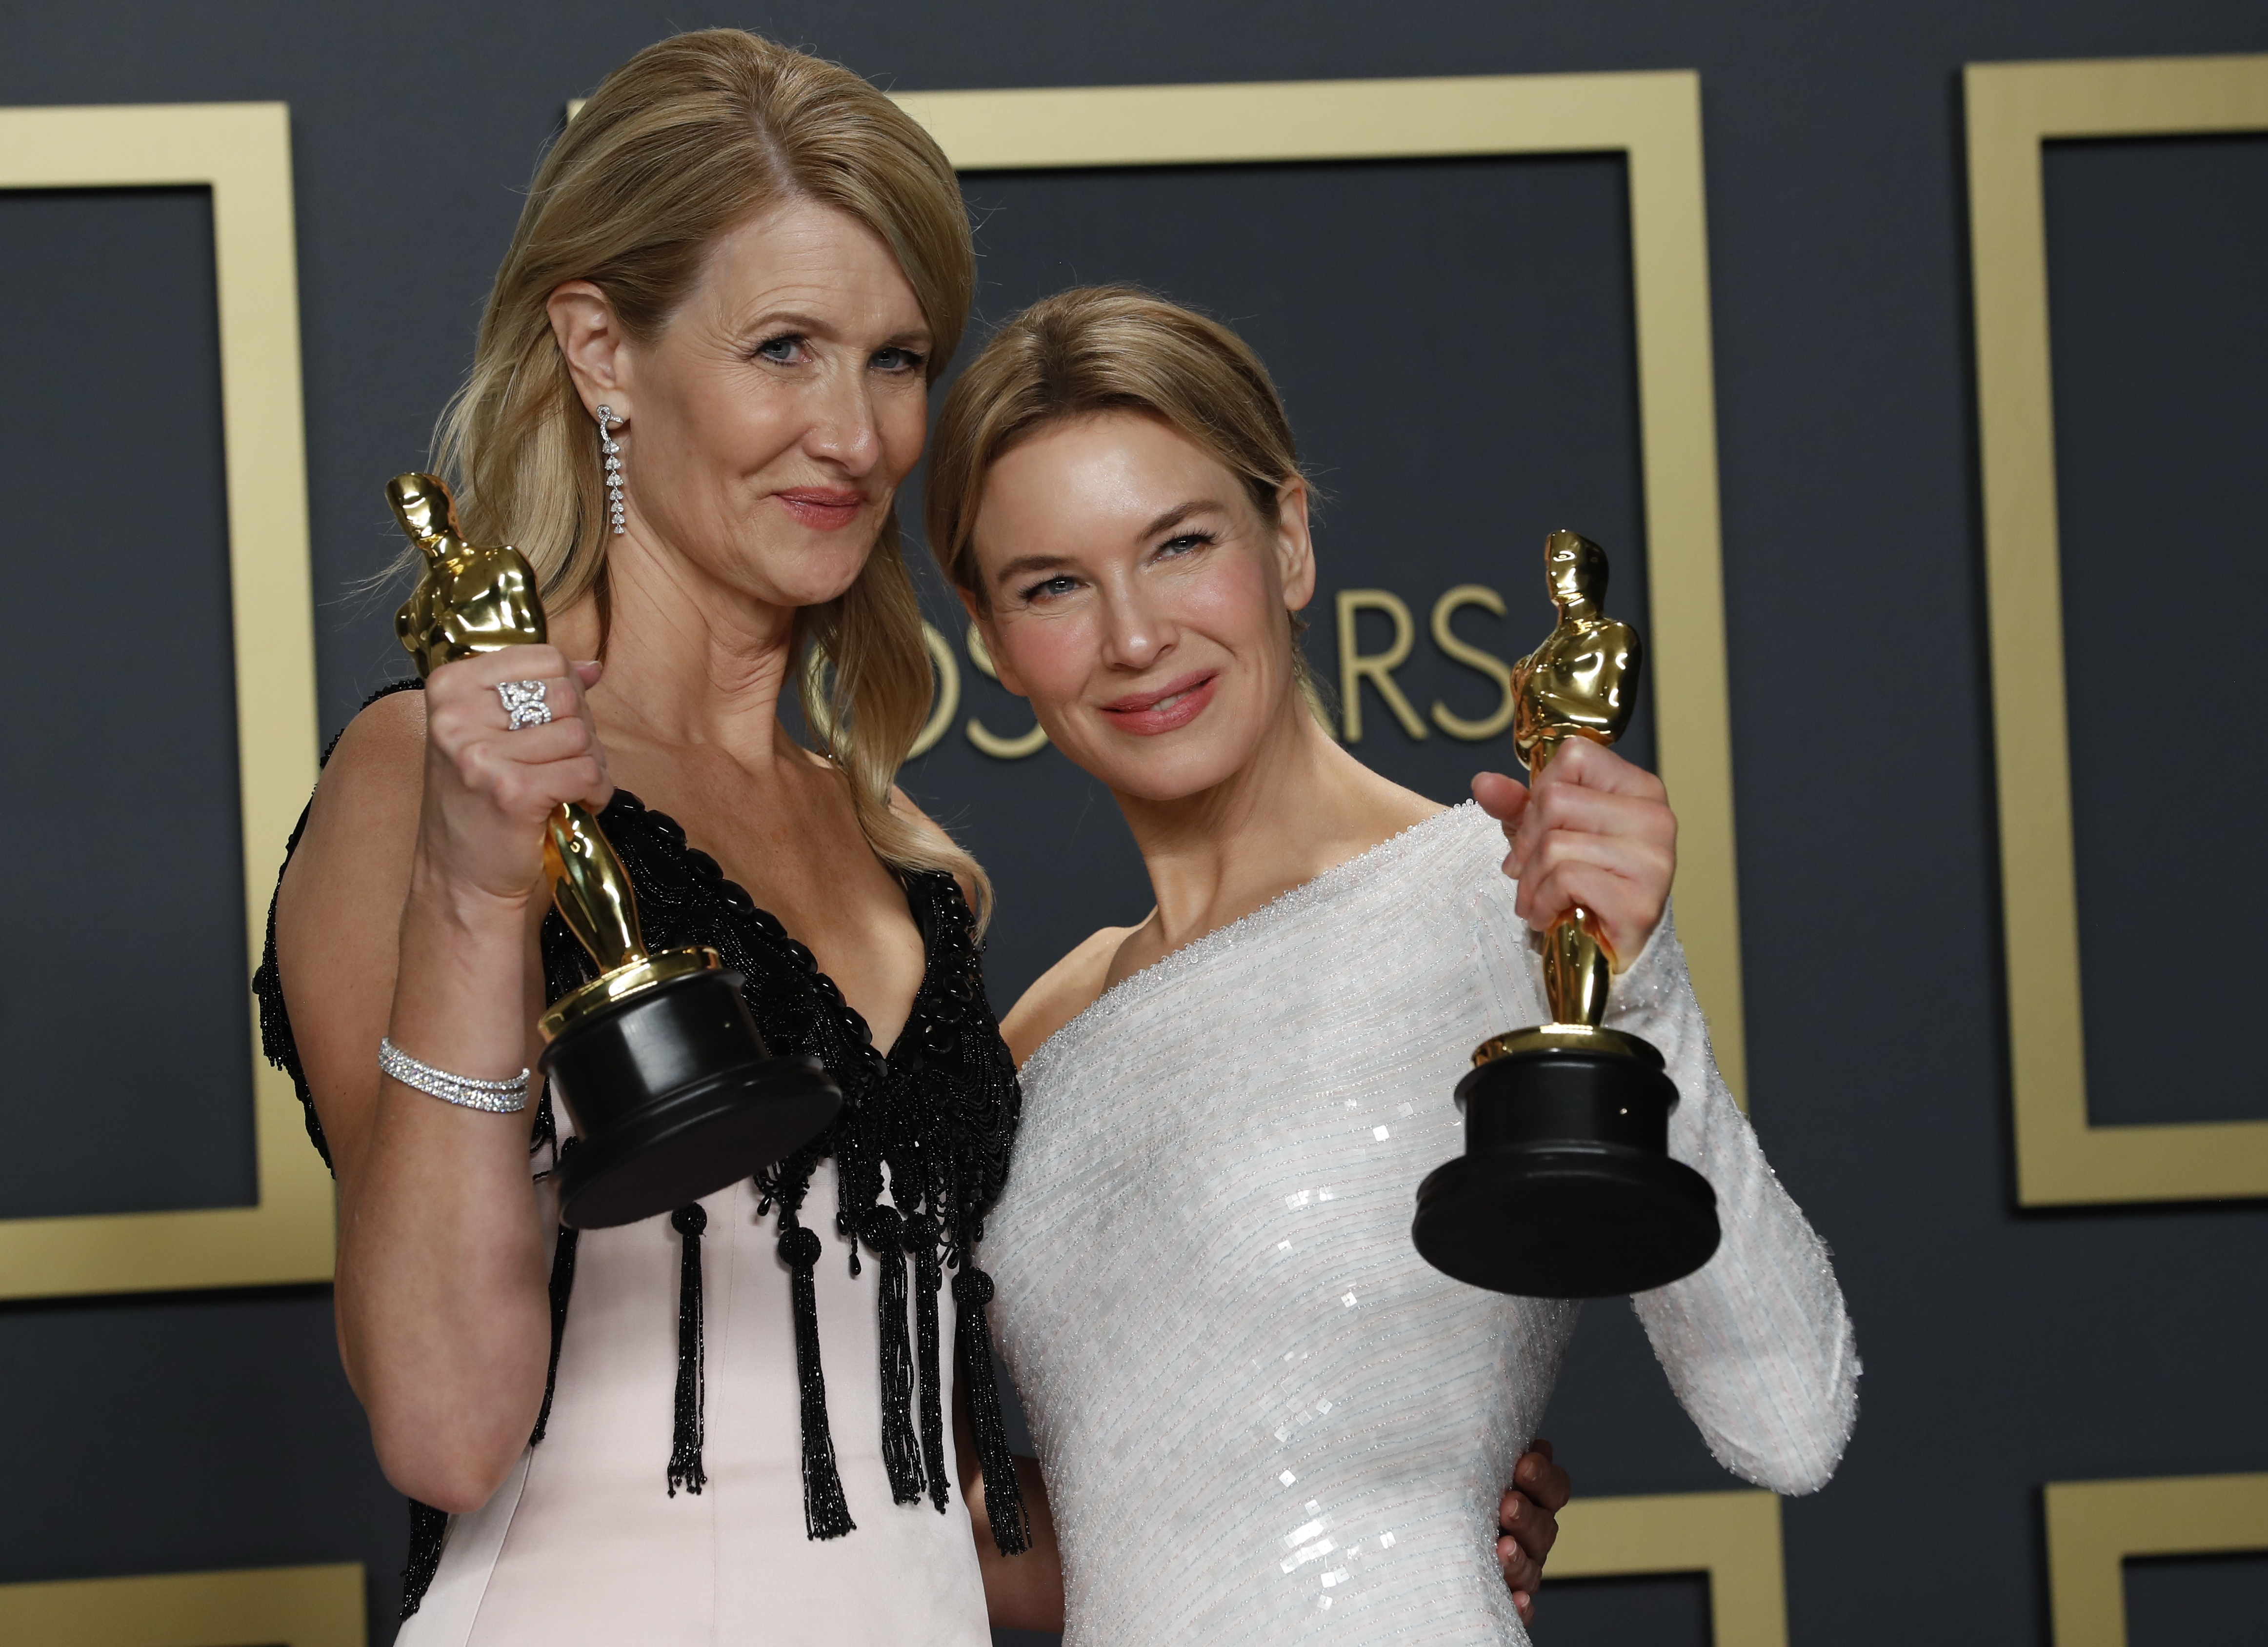 """Laura Dern poses with the Oscar for Best Supporting Actress in a ``Marriage Story'' and Renee Zellweger with her Oscar for Best Actress for """"Judy"""" in the photo room at the 92nd Academy Awards in Hollywood, Los Angeles, California, U.S., February 9, 2020. REUTERS/Lucas Jackson"""